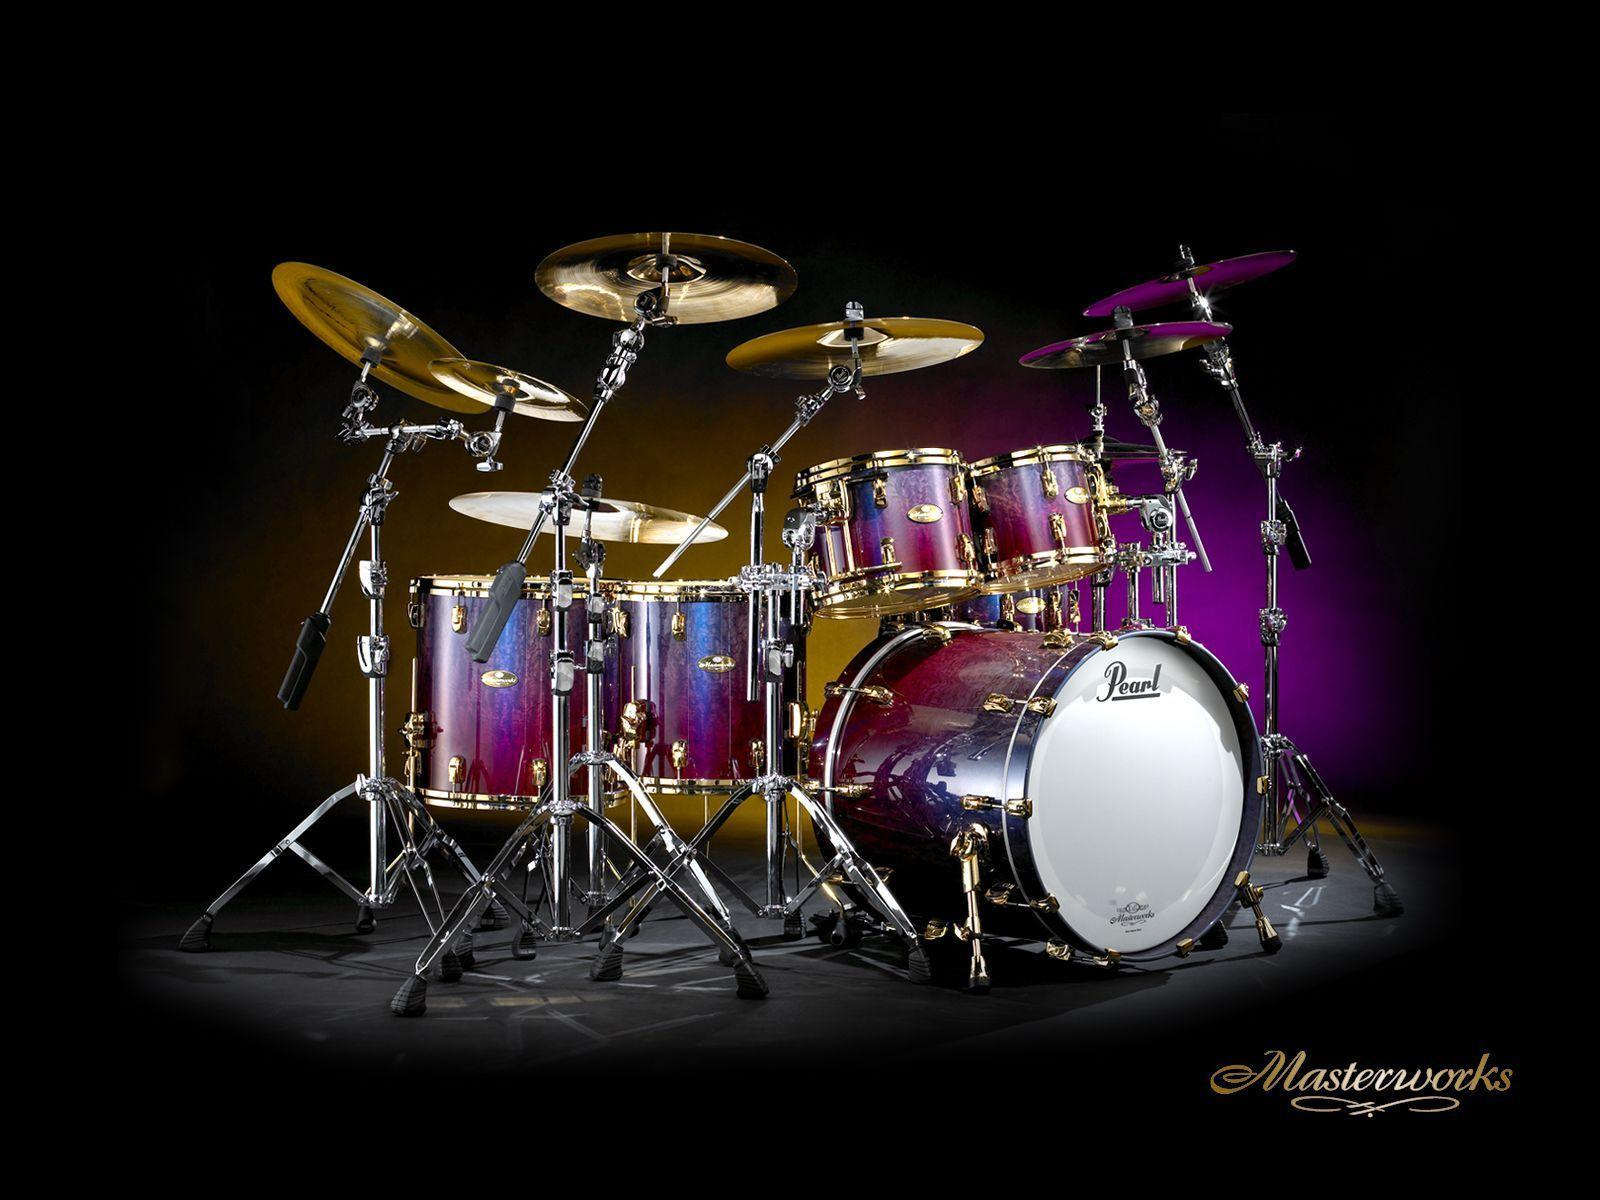 DW Drums Wallpapers - Wallpaper Cave